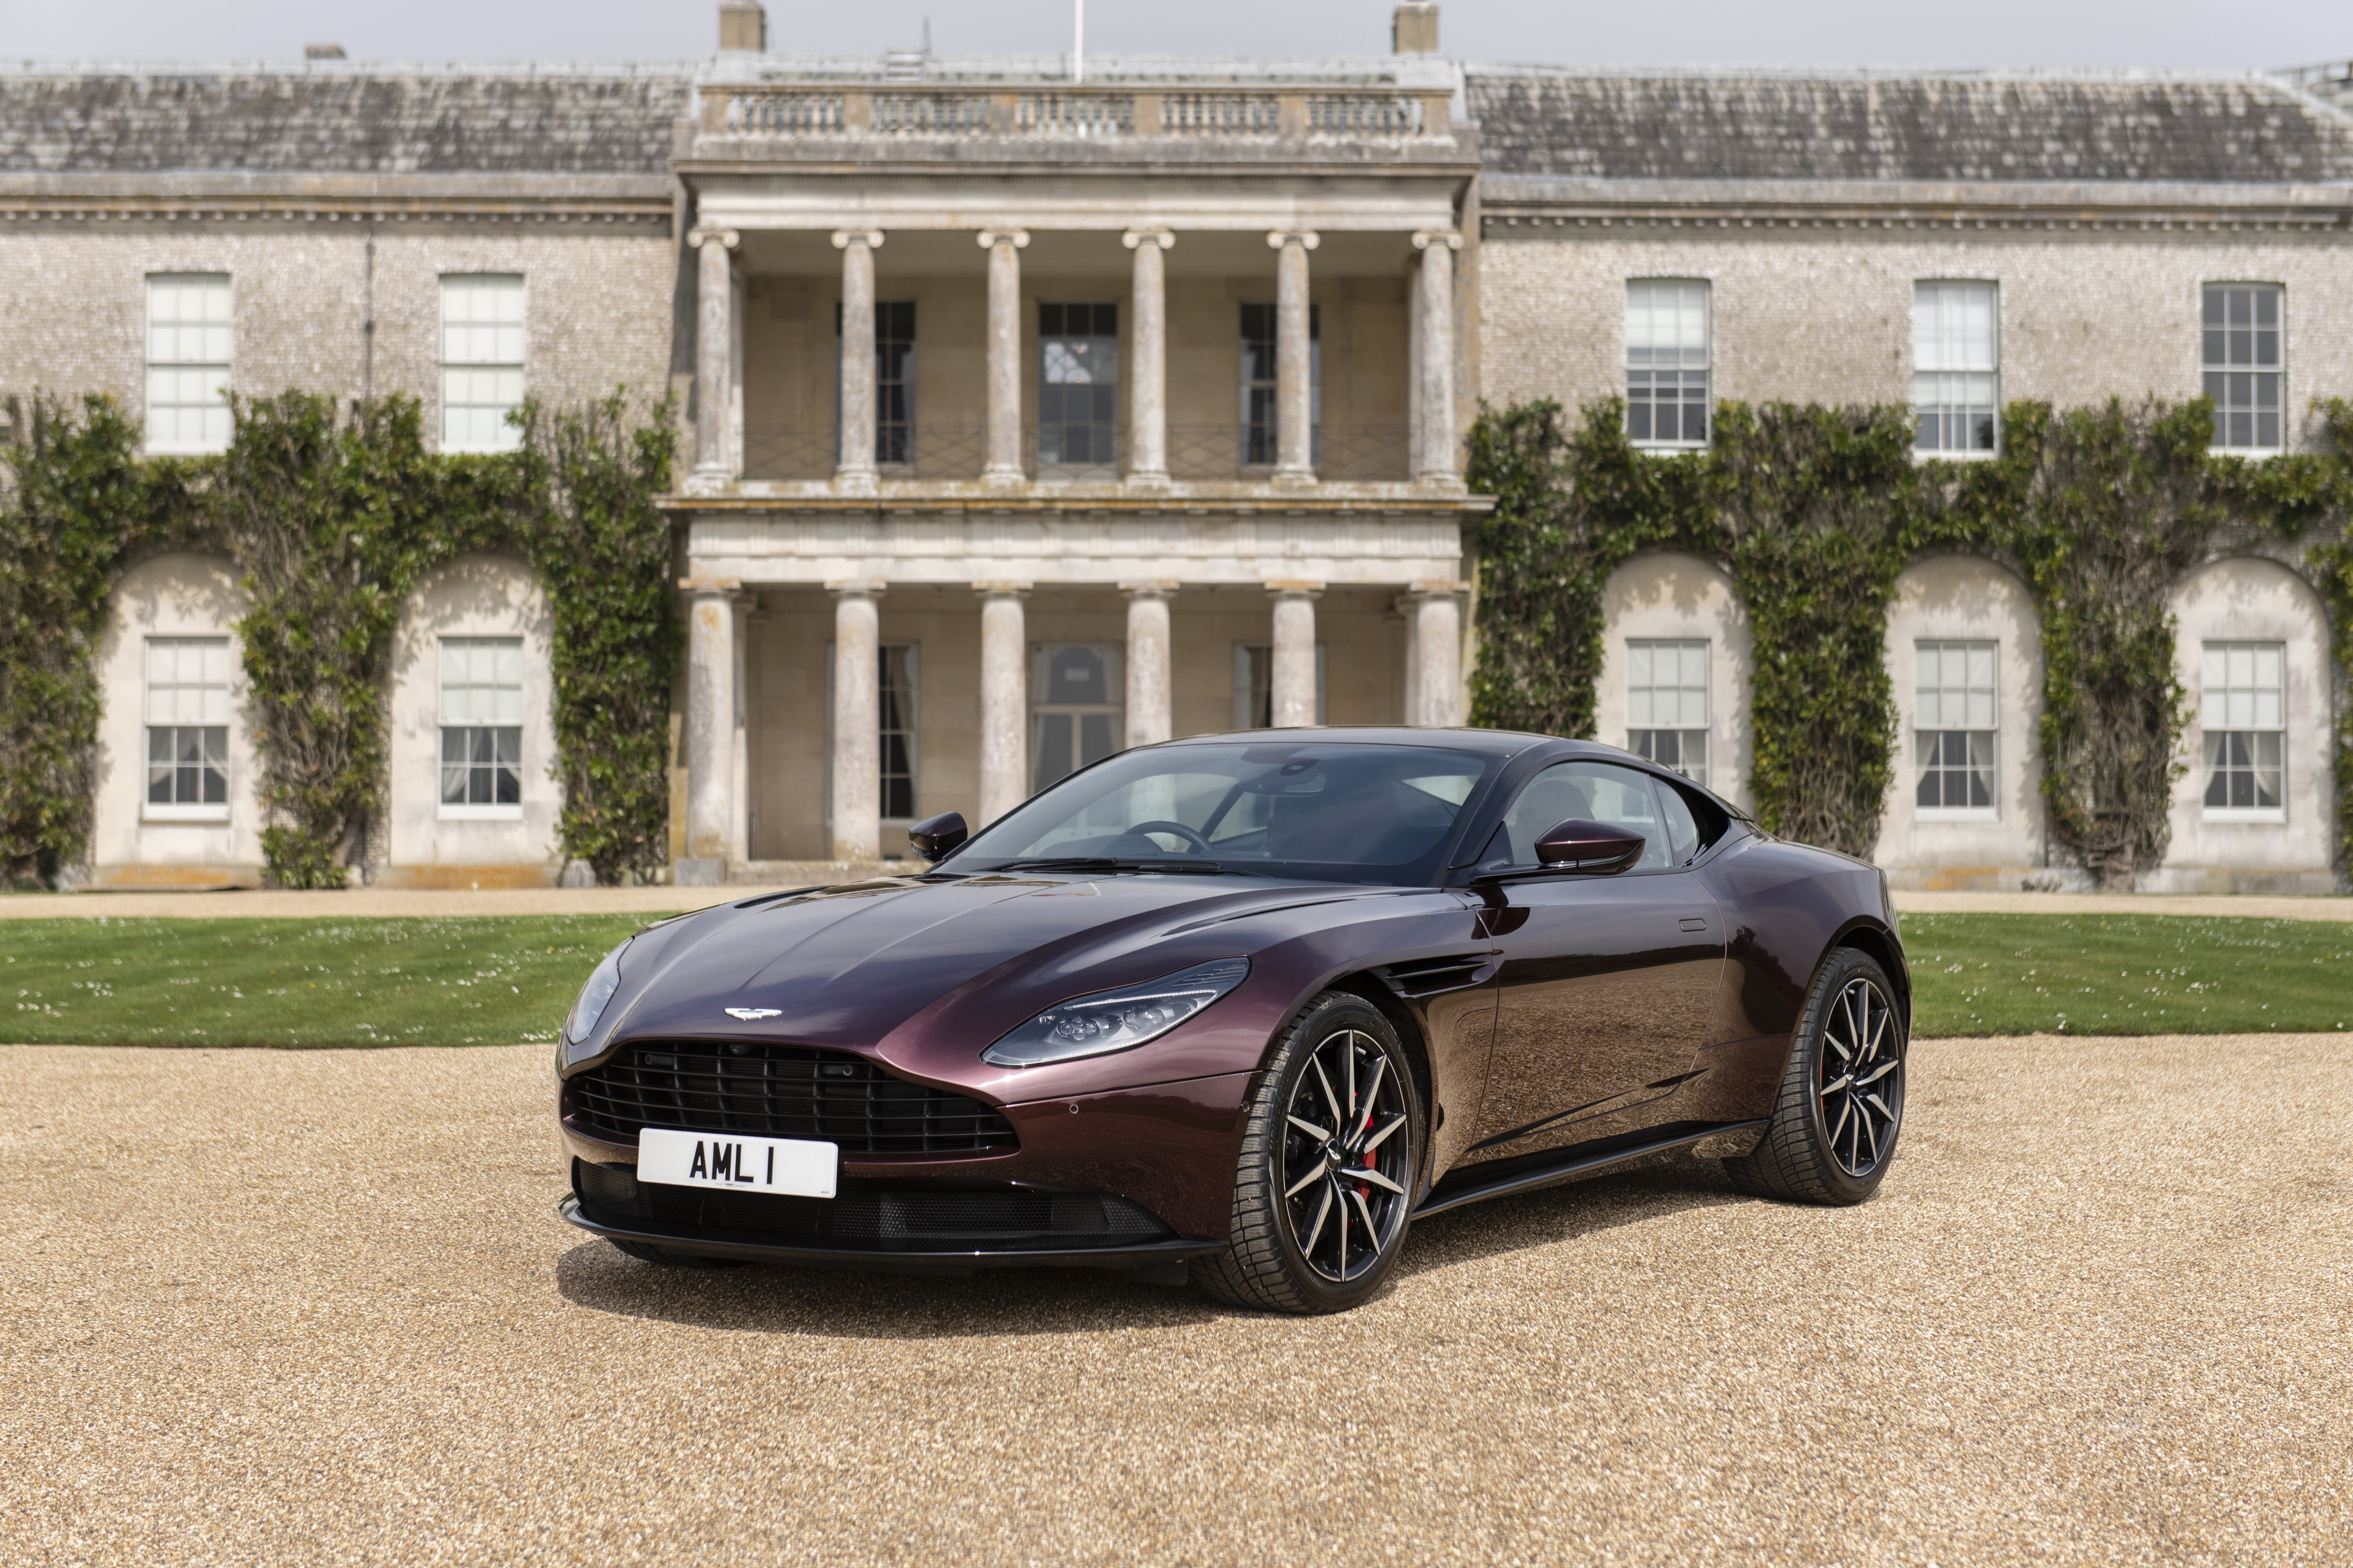 Aston Martin V8-powered DB11